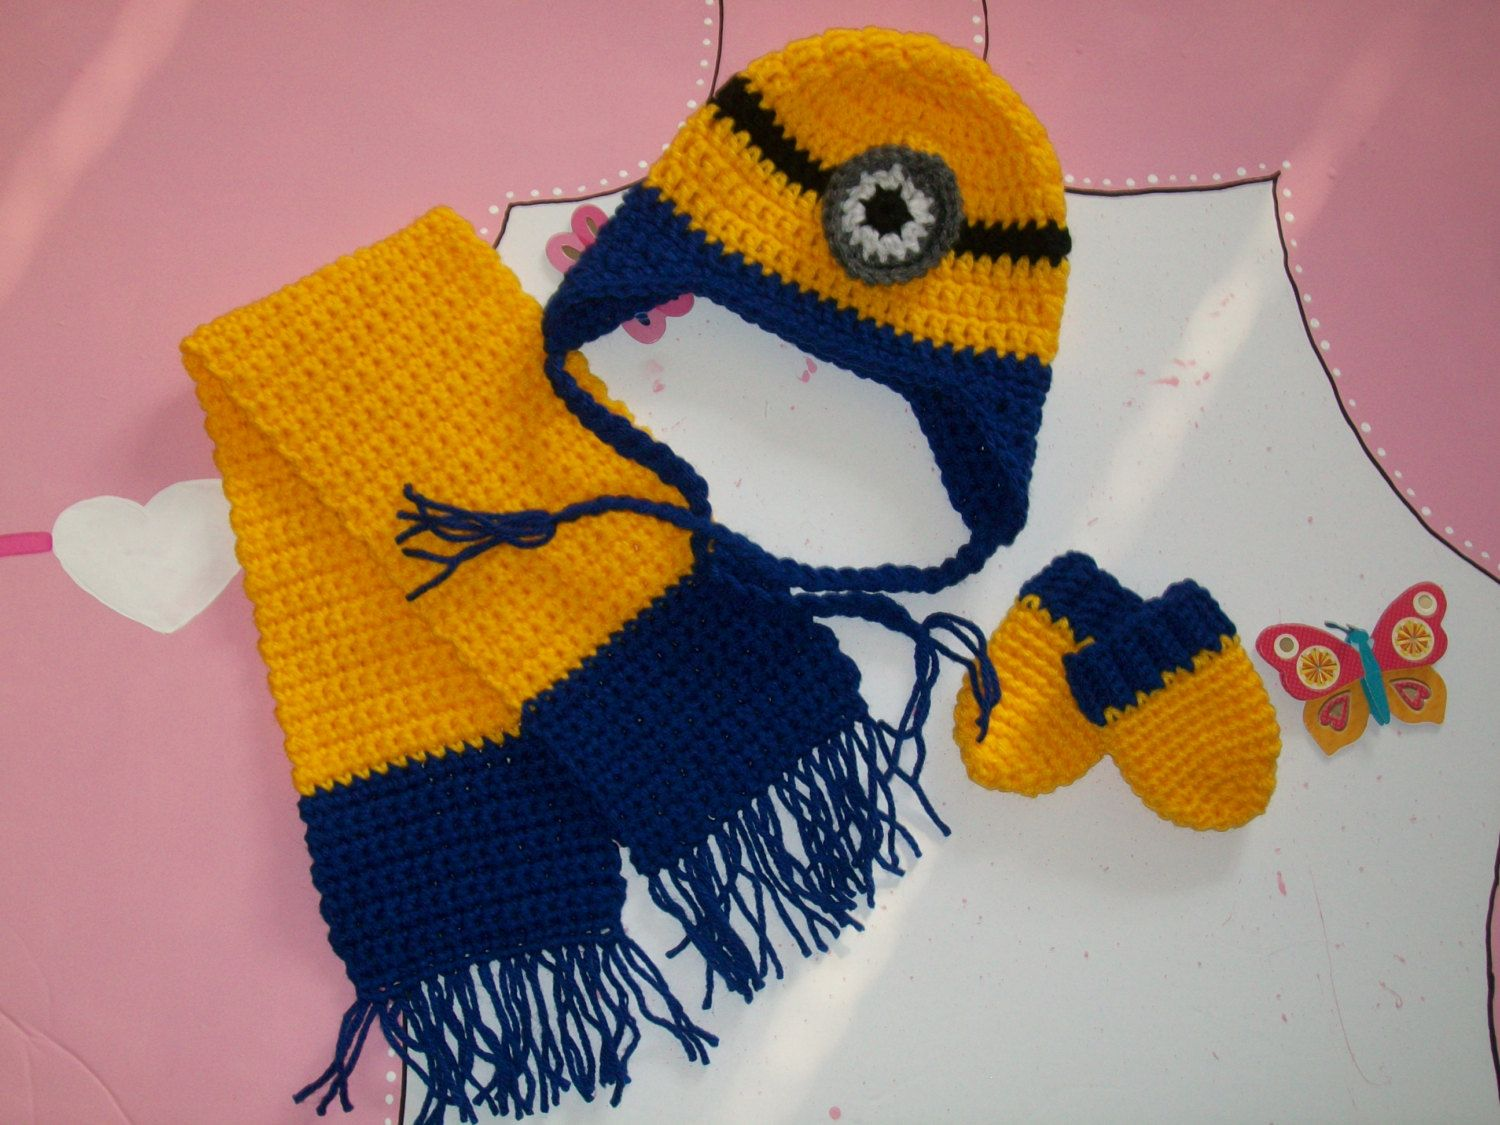 Baby boy clothes newborn baby boy outfit baby minion hat set baby boy clothes newborn baby boy outfit baby minion hat set boys clothing photo prop outfit clothing for boys bankloansurffo Choice Image